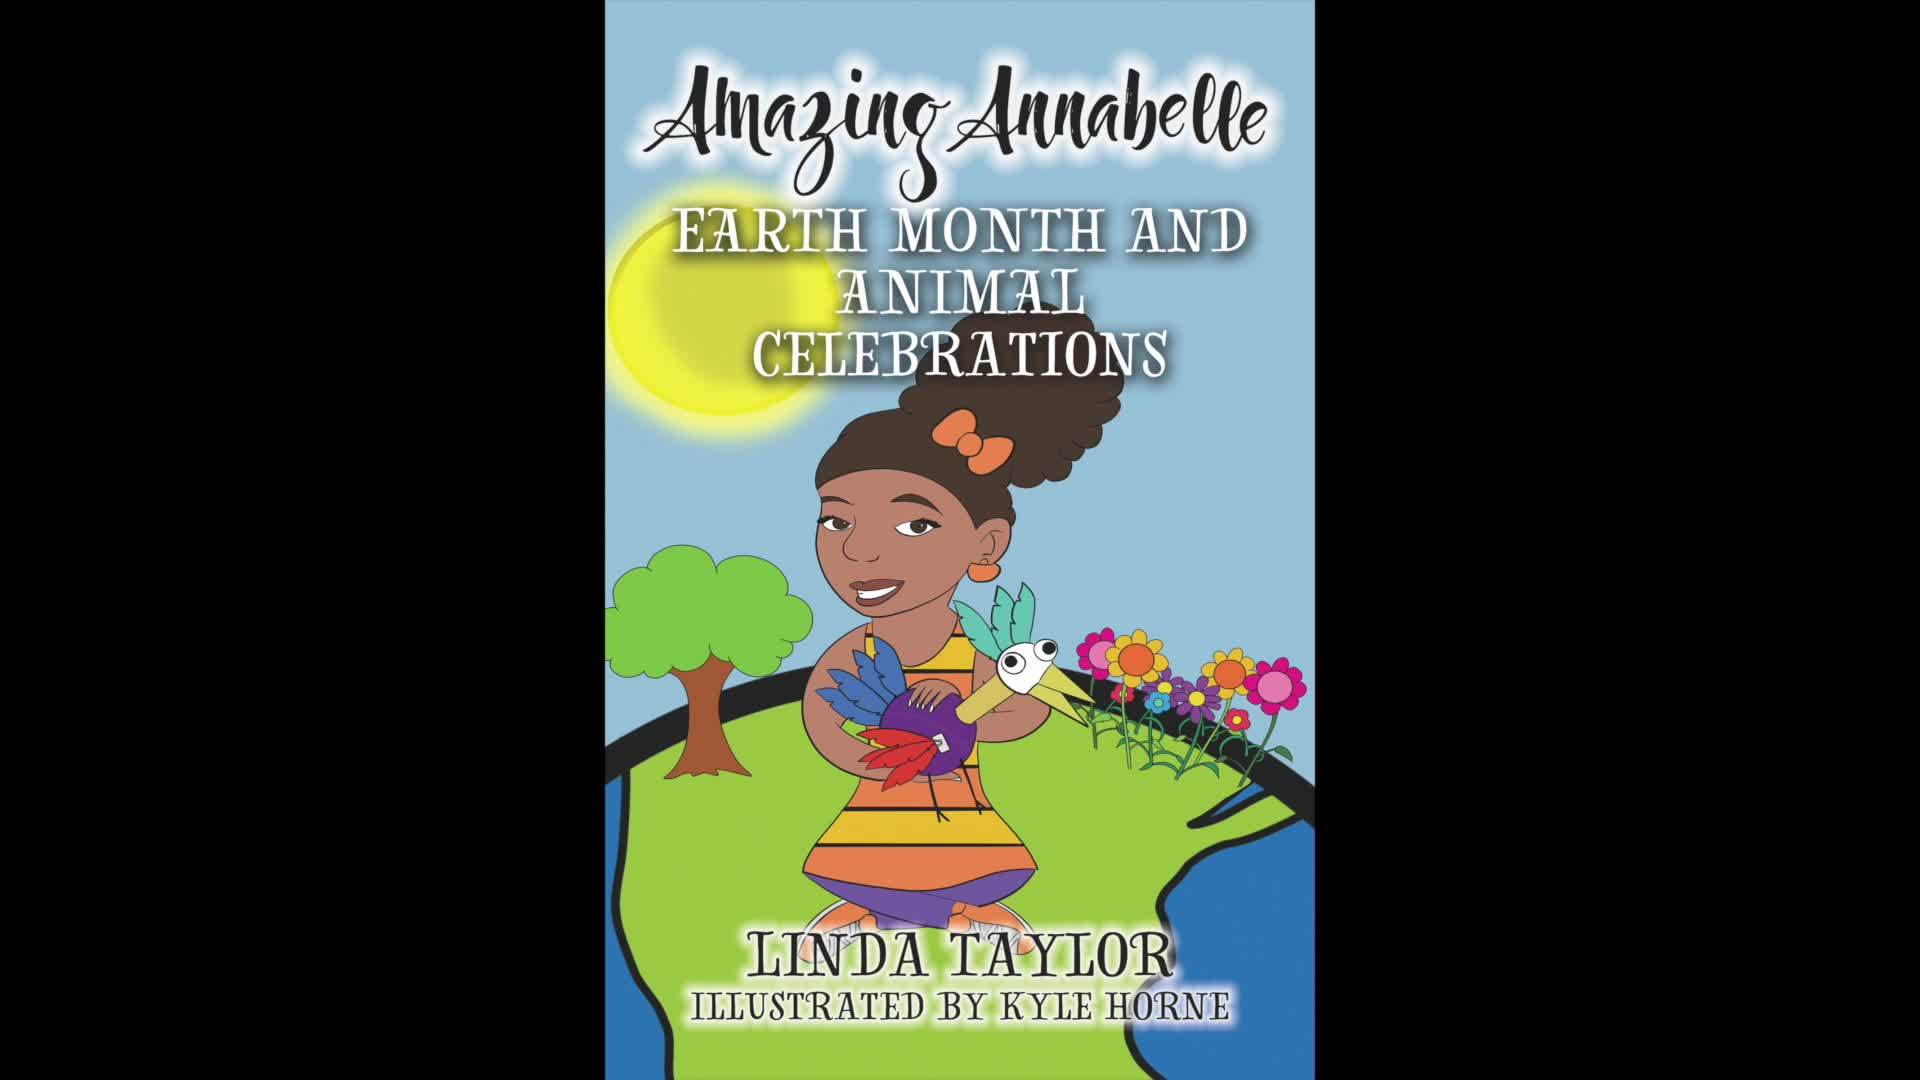 Amazing Annabelle Earth Month And Animal Celebrations Chapter 10